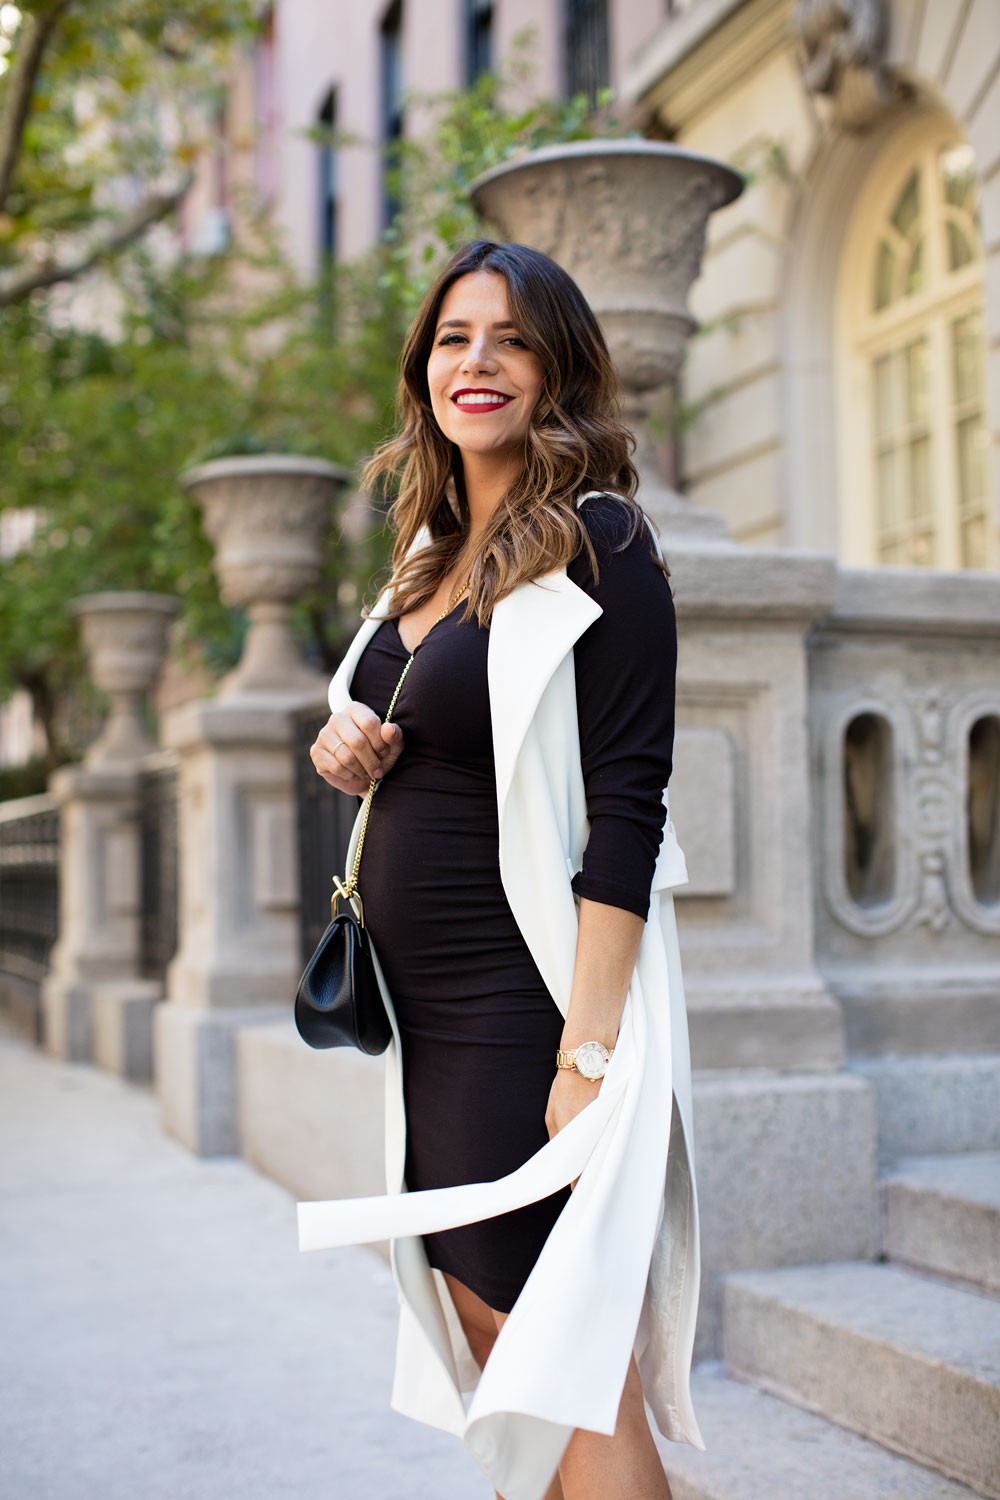 Maternity style nude flats talbots black dress HM white vest nordstrom chloe drew mini nano new york city fashion blogger corporate catwalk what to wear while pregnant nyc maternity style 12